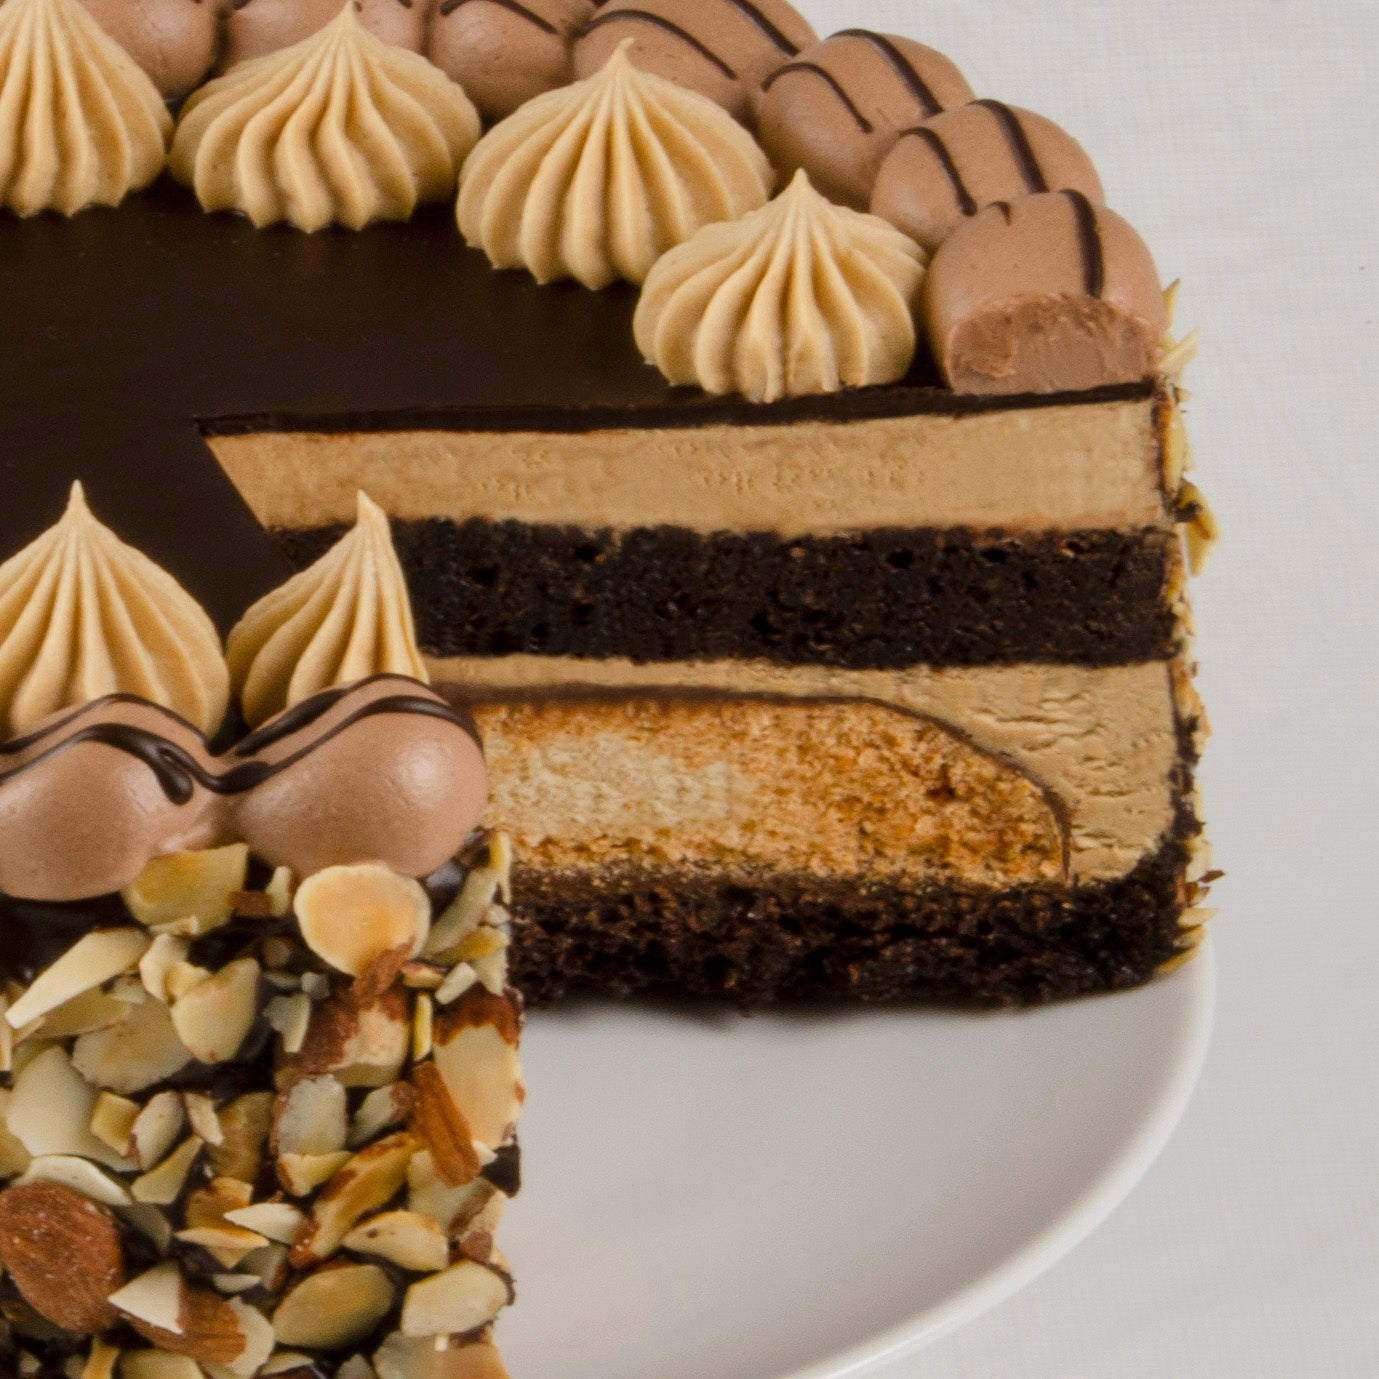 Jamocha Almond Fudge Cake